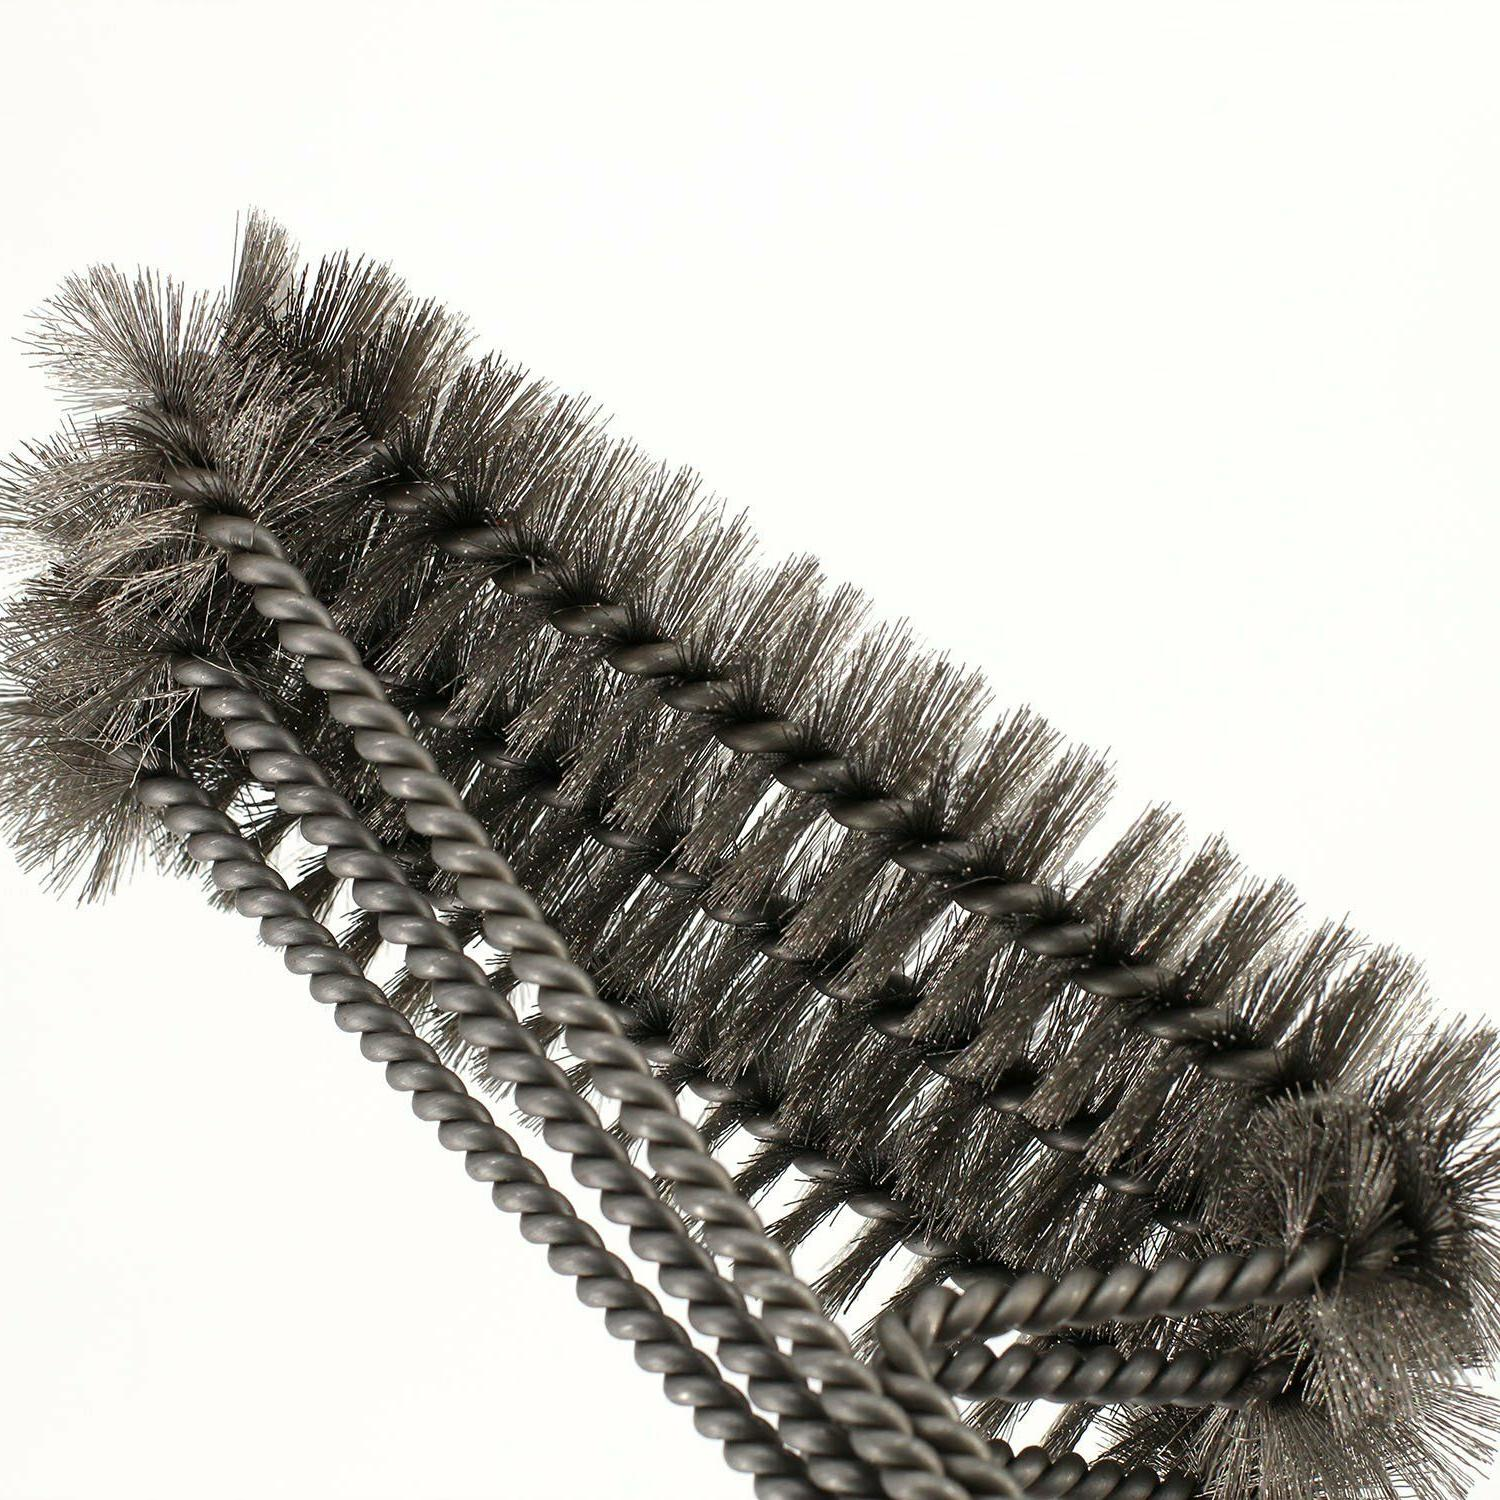 BBQ Grill Brush Grate Cleaner